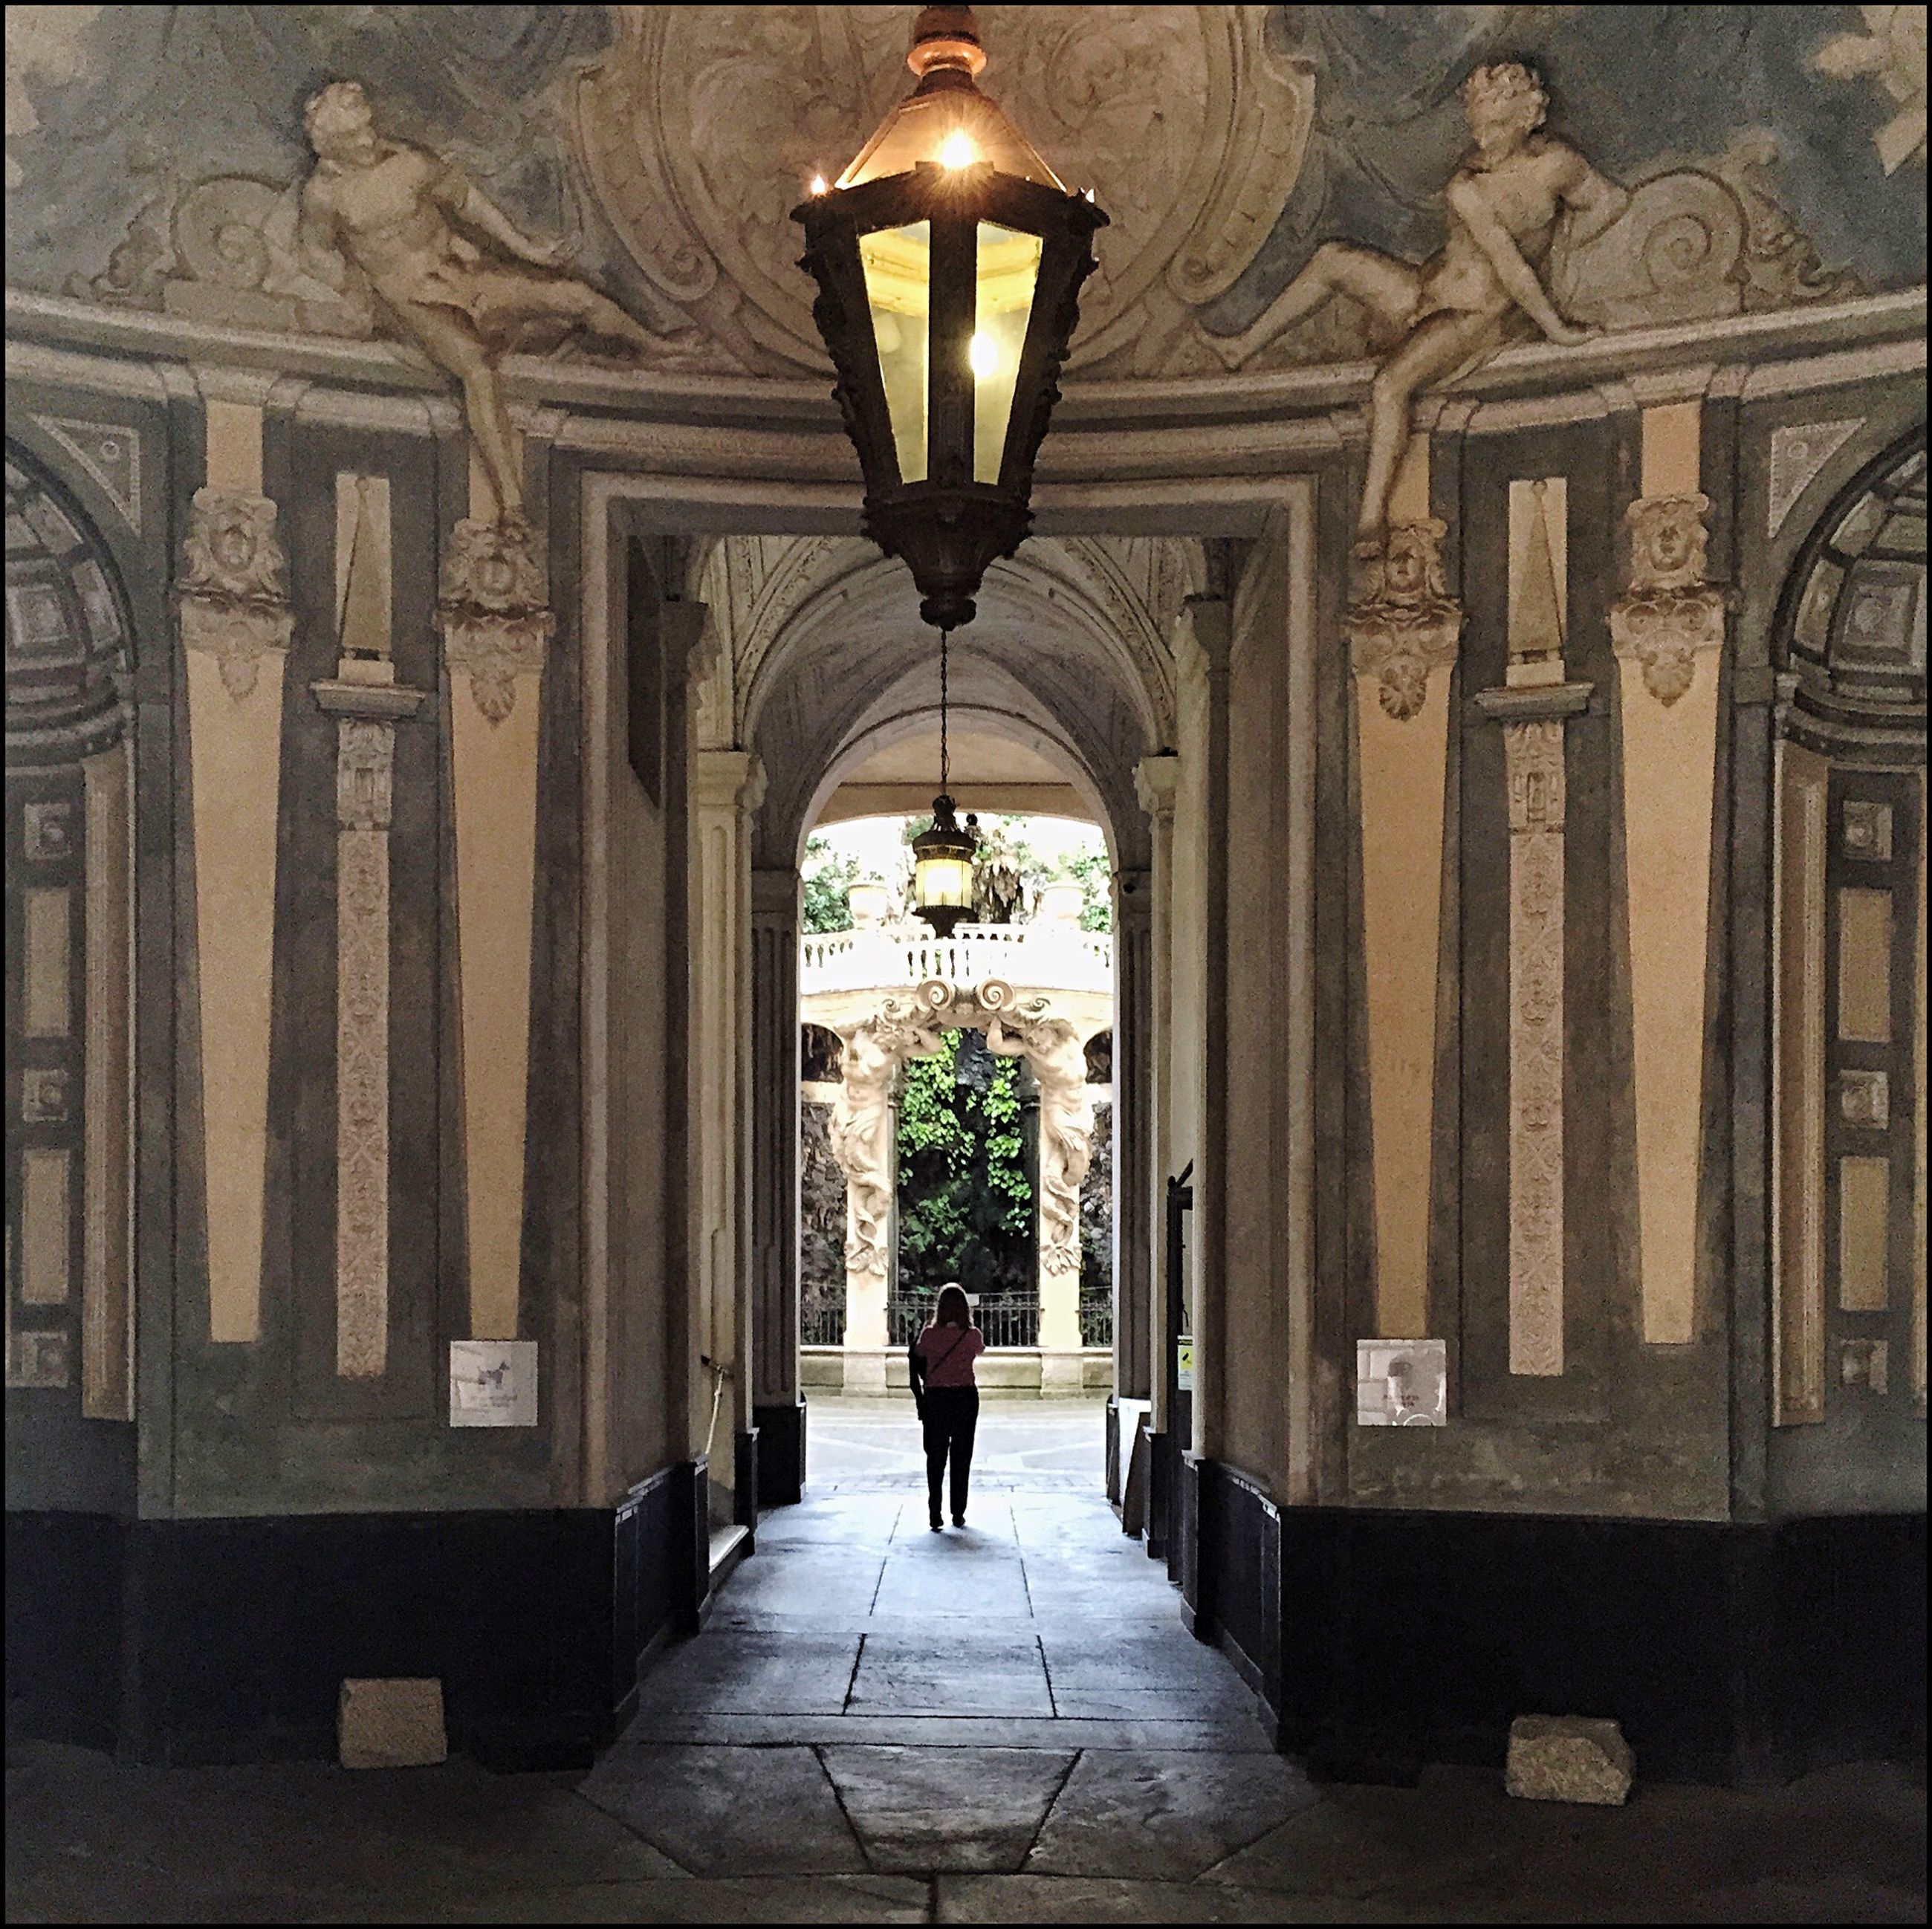 architecture, indoors, built structure, the way forward, men, rear view, walking, arch, corridor, person, full length, lifestyles, entrance, architectural column, diminishing perspective, tiled floor, leisure activity, lighting equipment